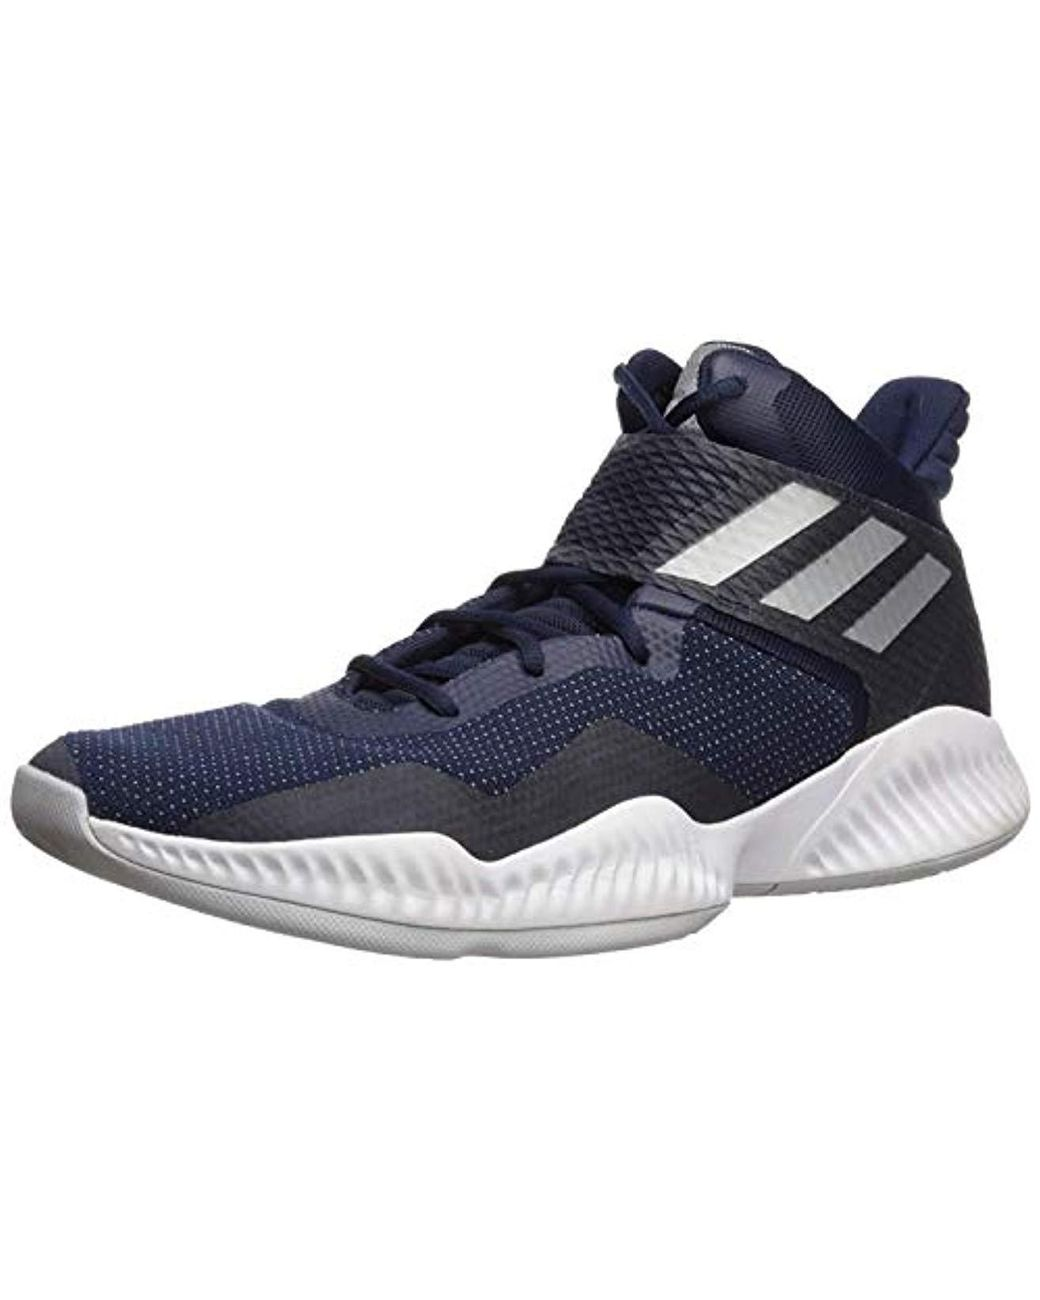 7576a9574c1 Lyst - adidas Originals Pro Bounce 2018 Basketball Shoe in Blue for Men